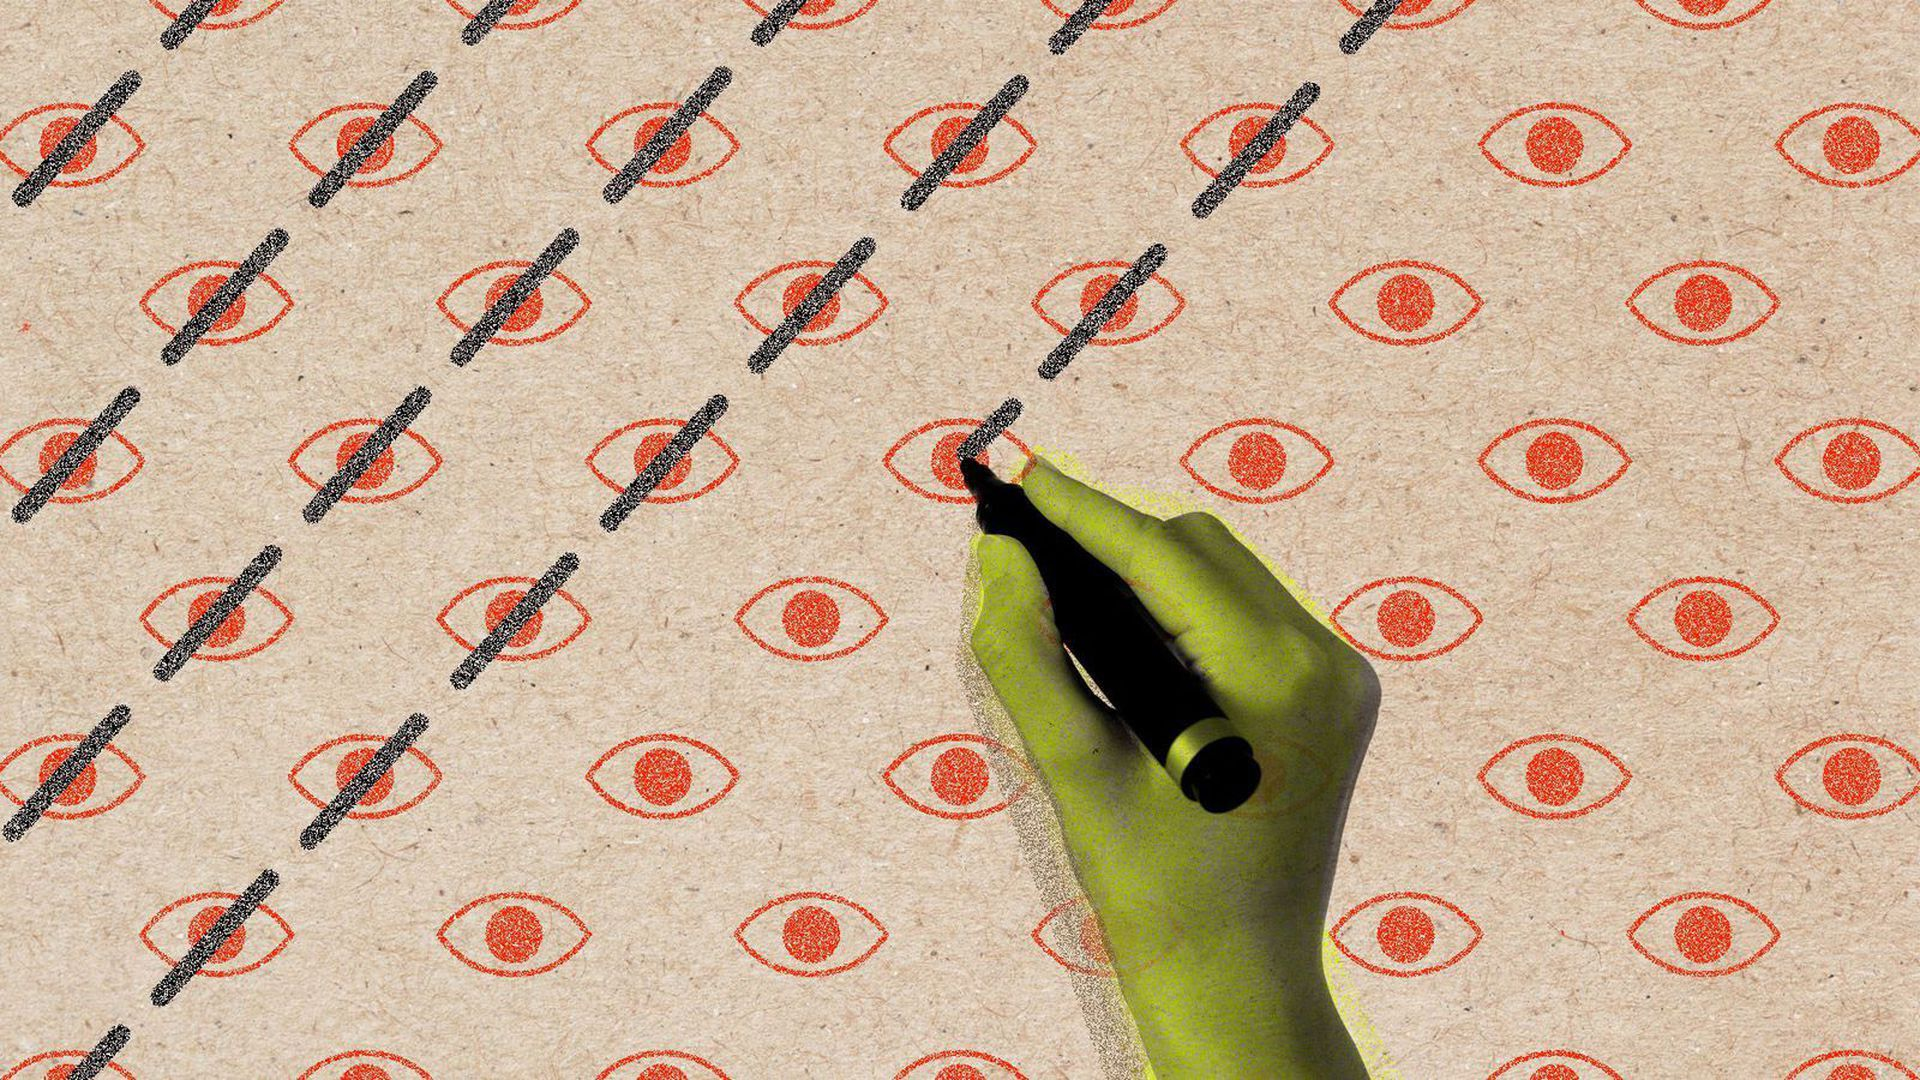 Illustration of a hand with pen crossing out eyes in a pattern